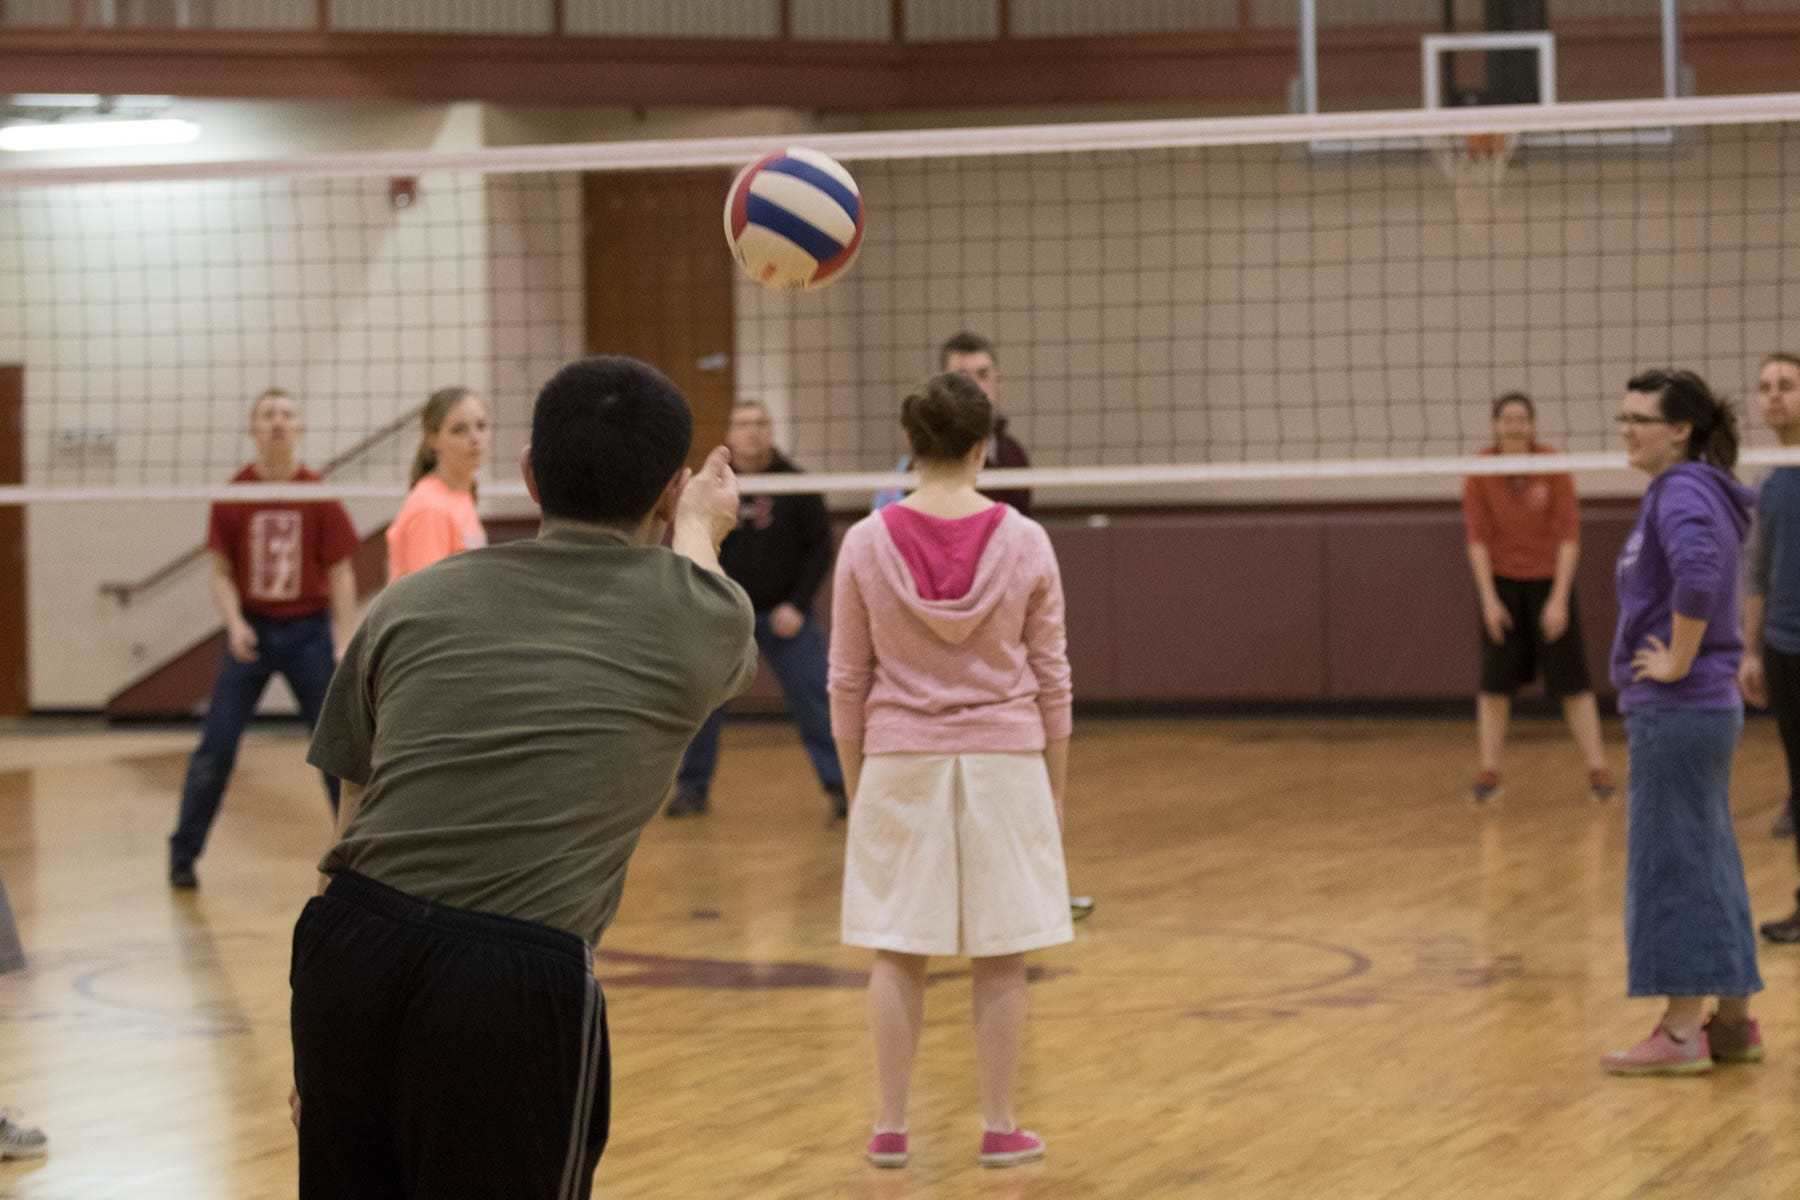 Fairhaven Baptist College Volleyball Marathon 2016 (13 of 25)